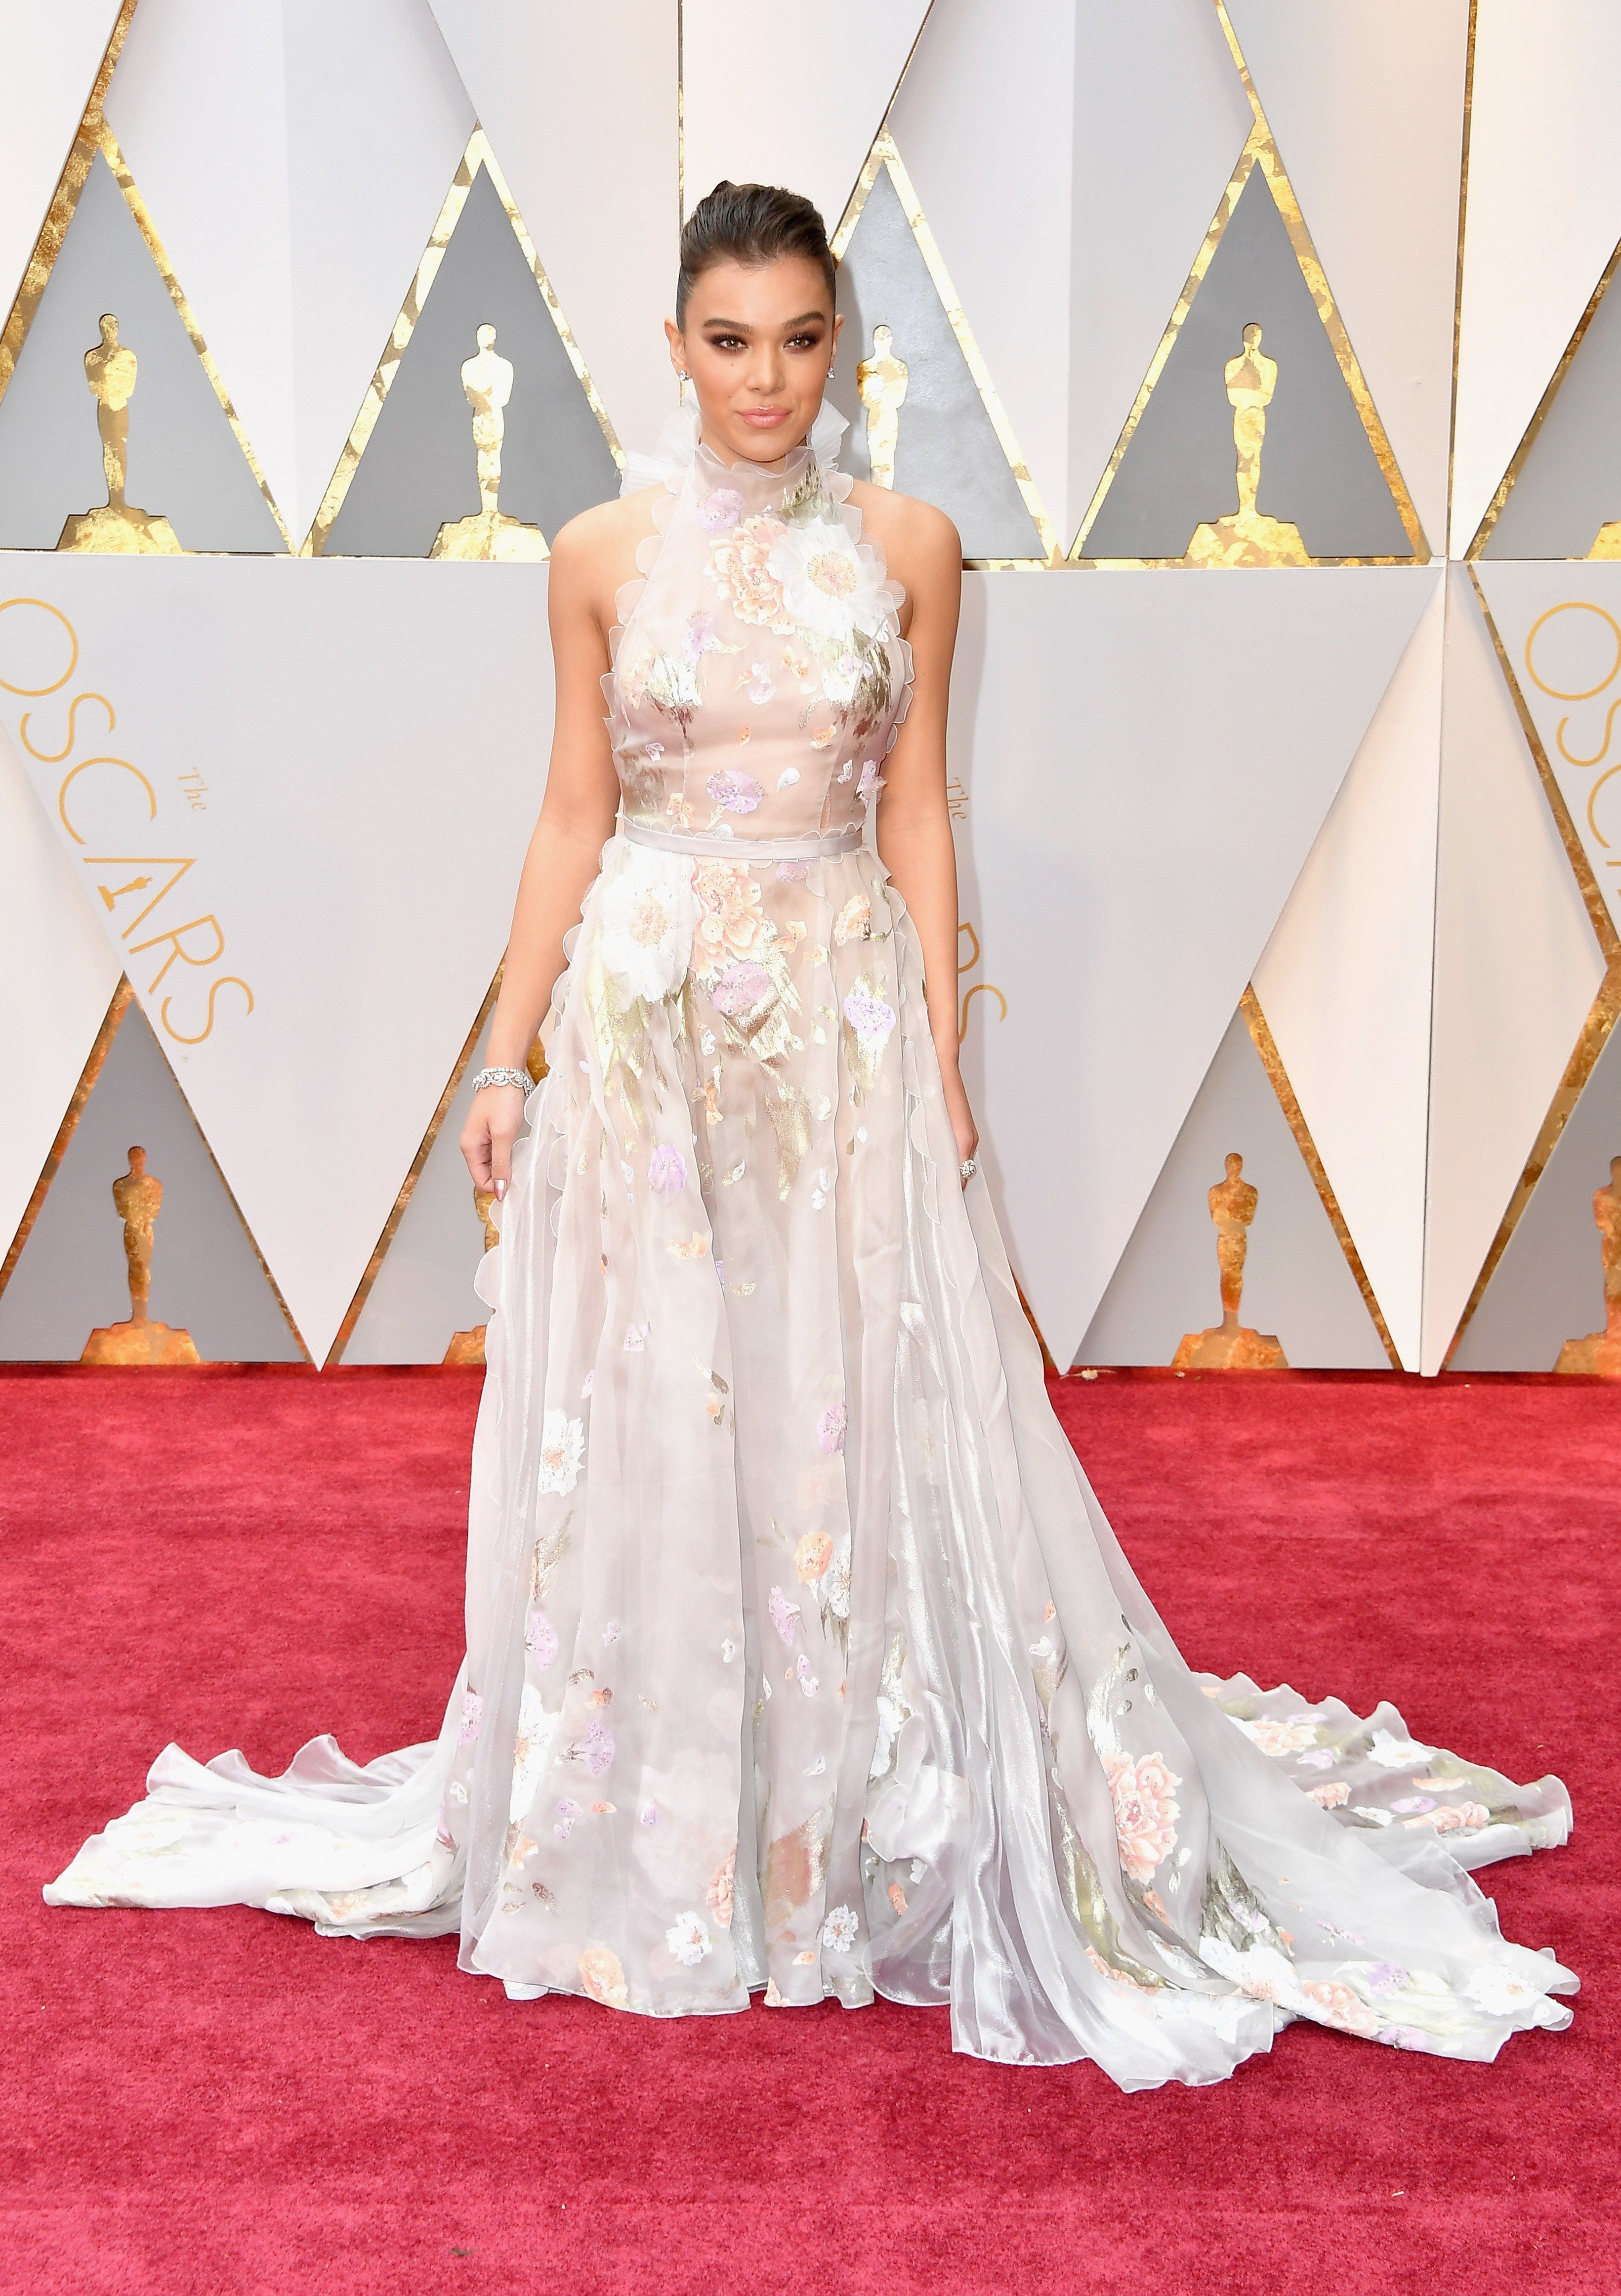 Oscars 2017 Fashion Live From The Red Carpet Nice Dresses Red Carpet Dresses 2017 Red Carpet Dresses